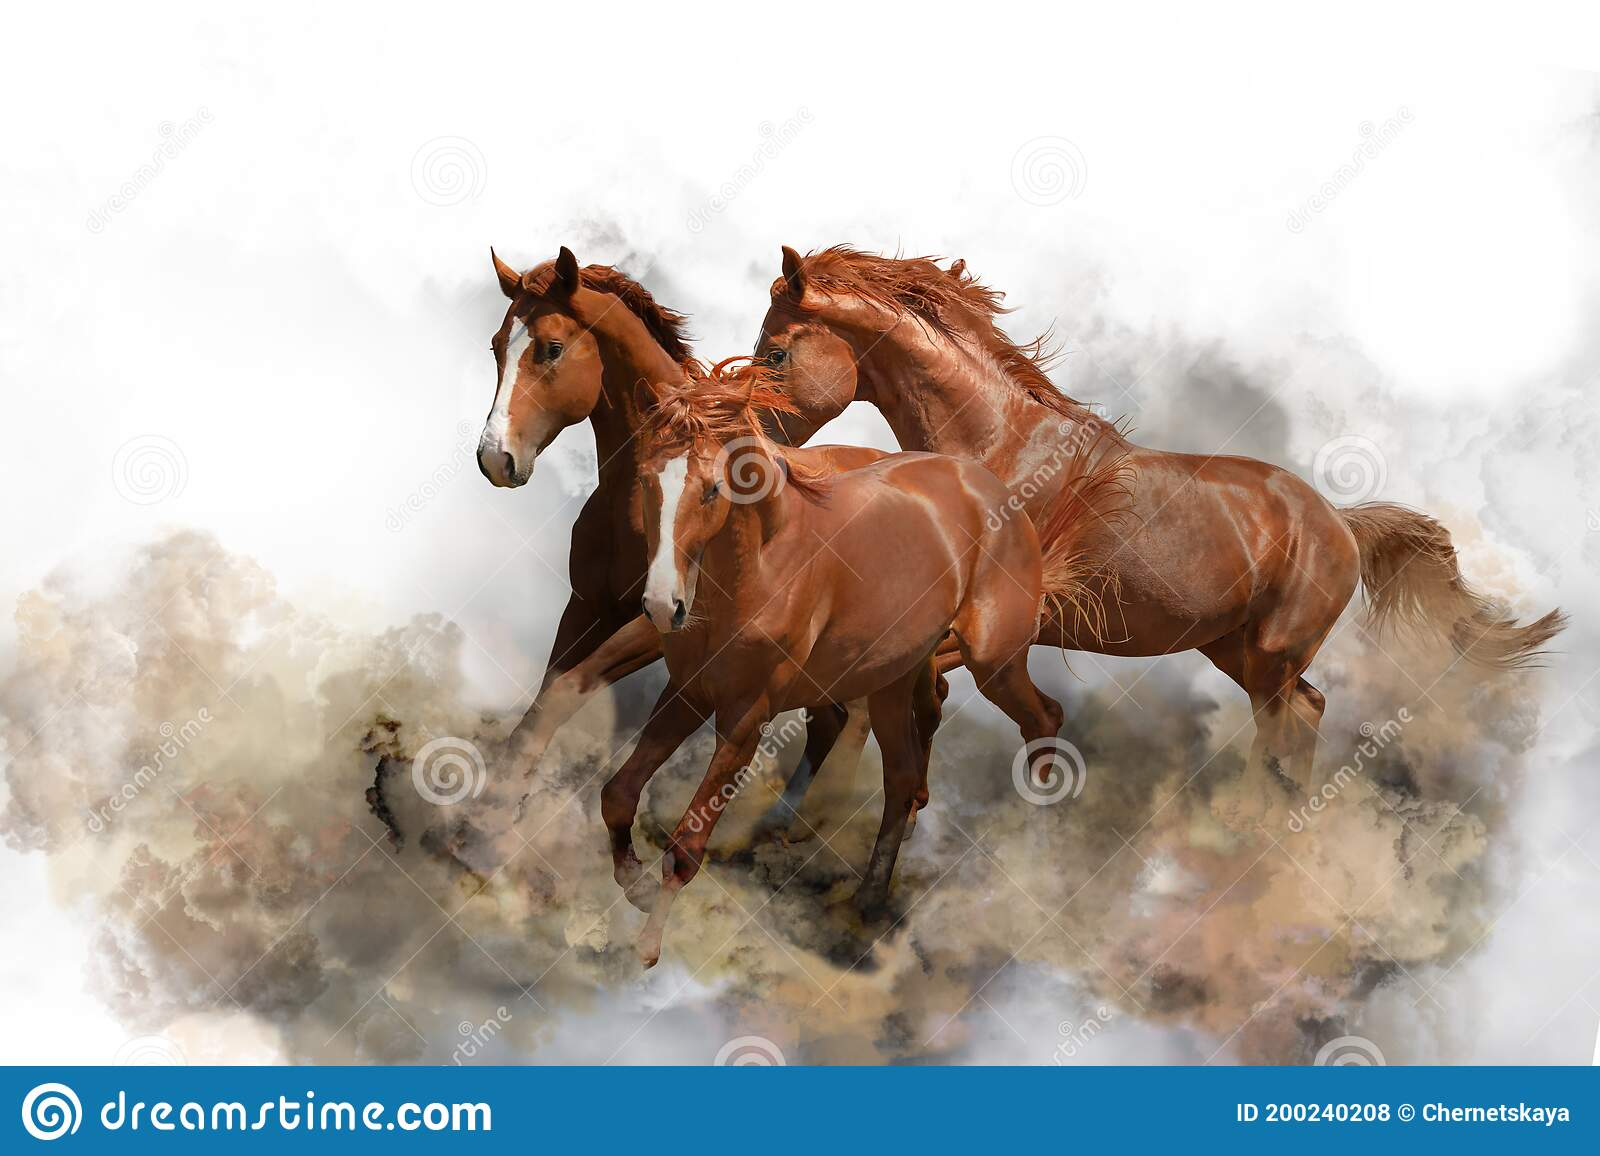 1 480 White Horses Dust Photos Free Royalty Free Stock Photos From Dreamstime